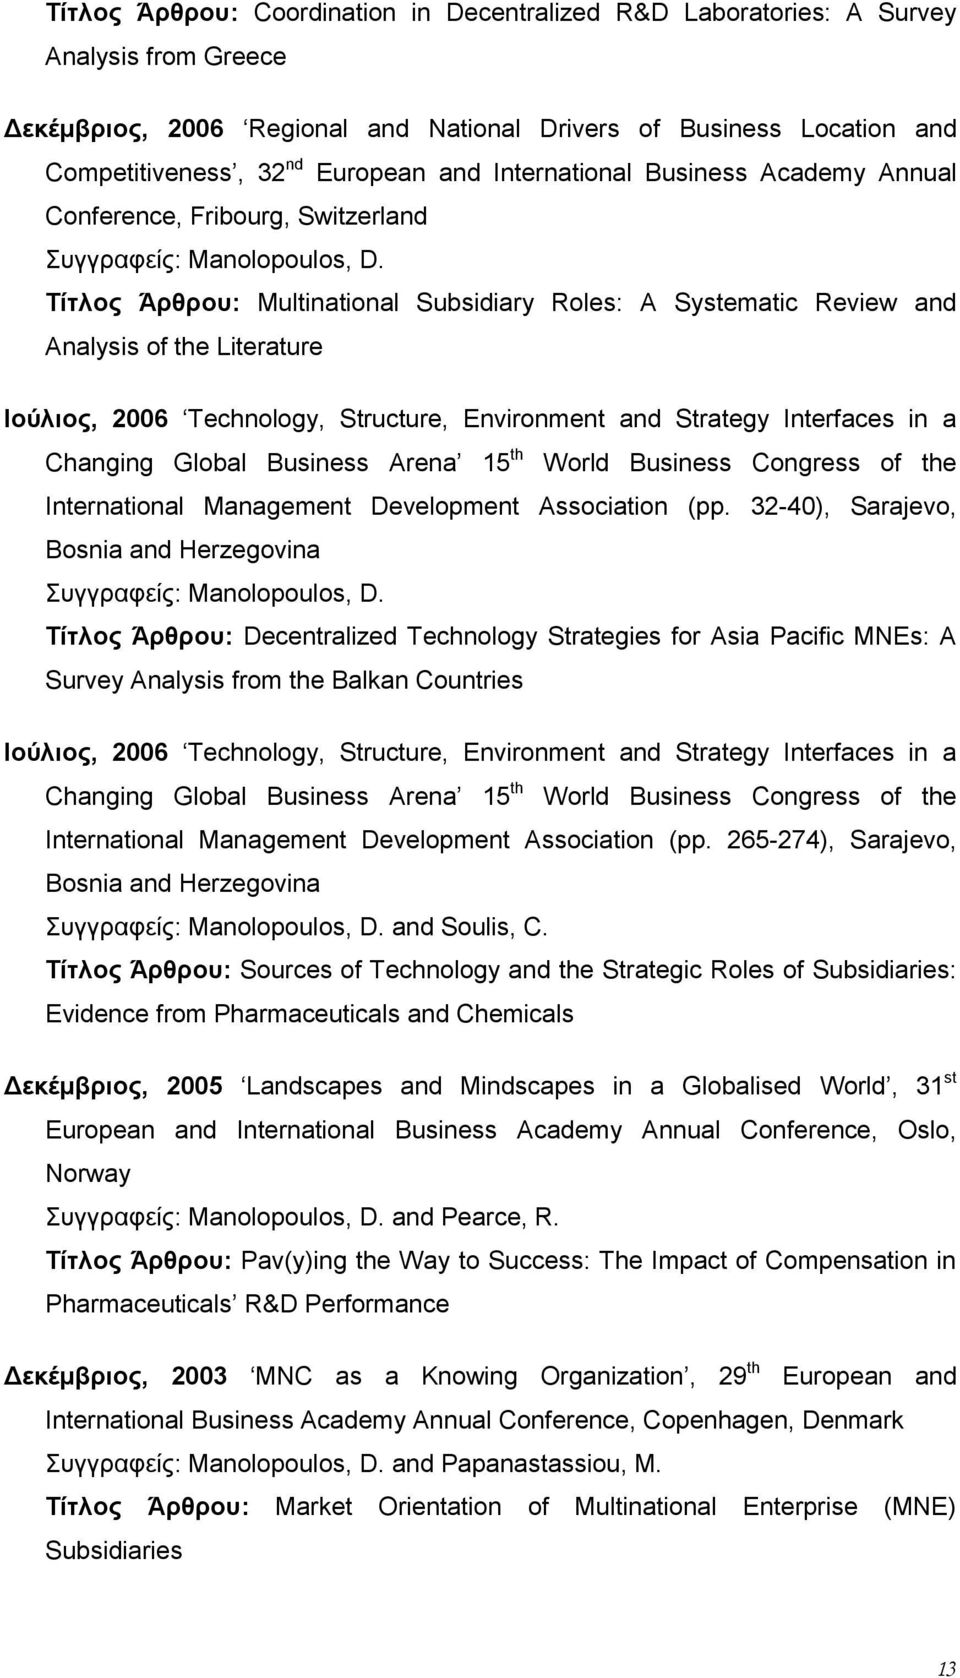 Τίτλος Άρθρου: Multinational Subsidiary Roles: A Systematic Review and Analysis of the Literature Ιούλιος, 2006 Technology, Structure, Environment and Strategy Interfaces in a Changing Global